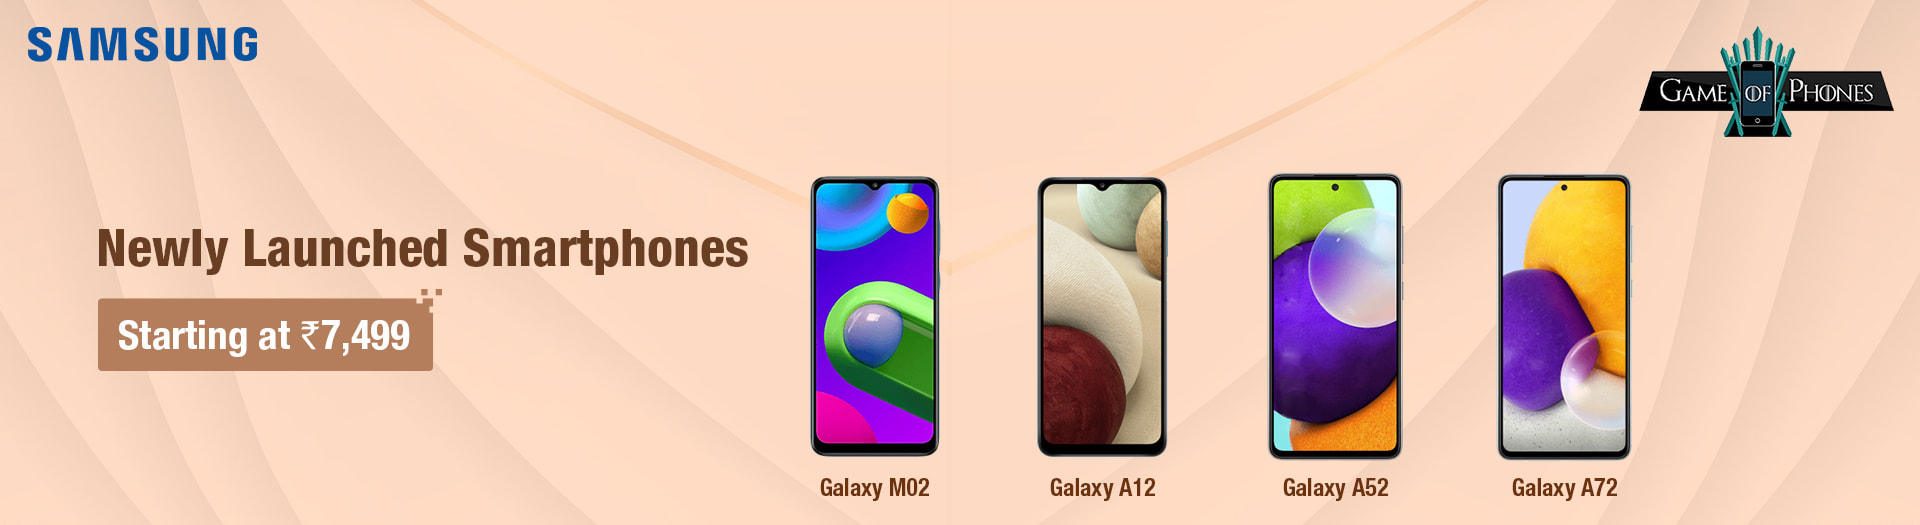 Newly Launched Smartphones